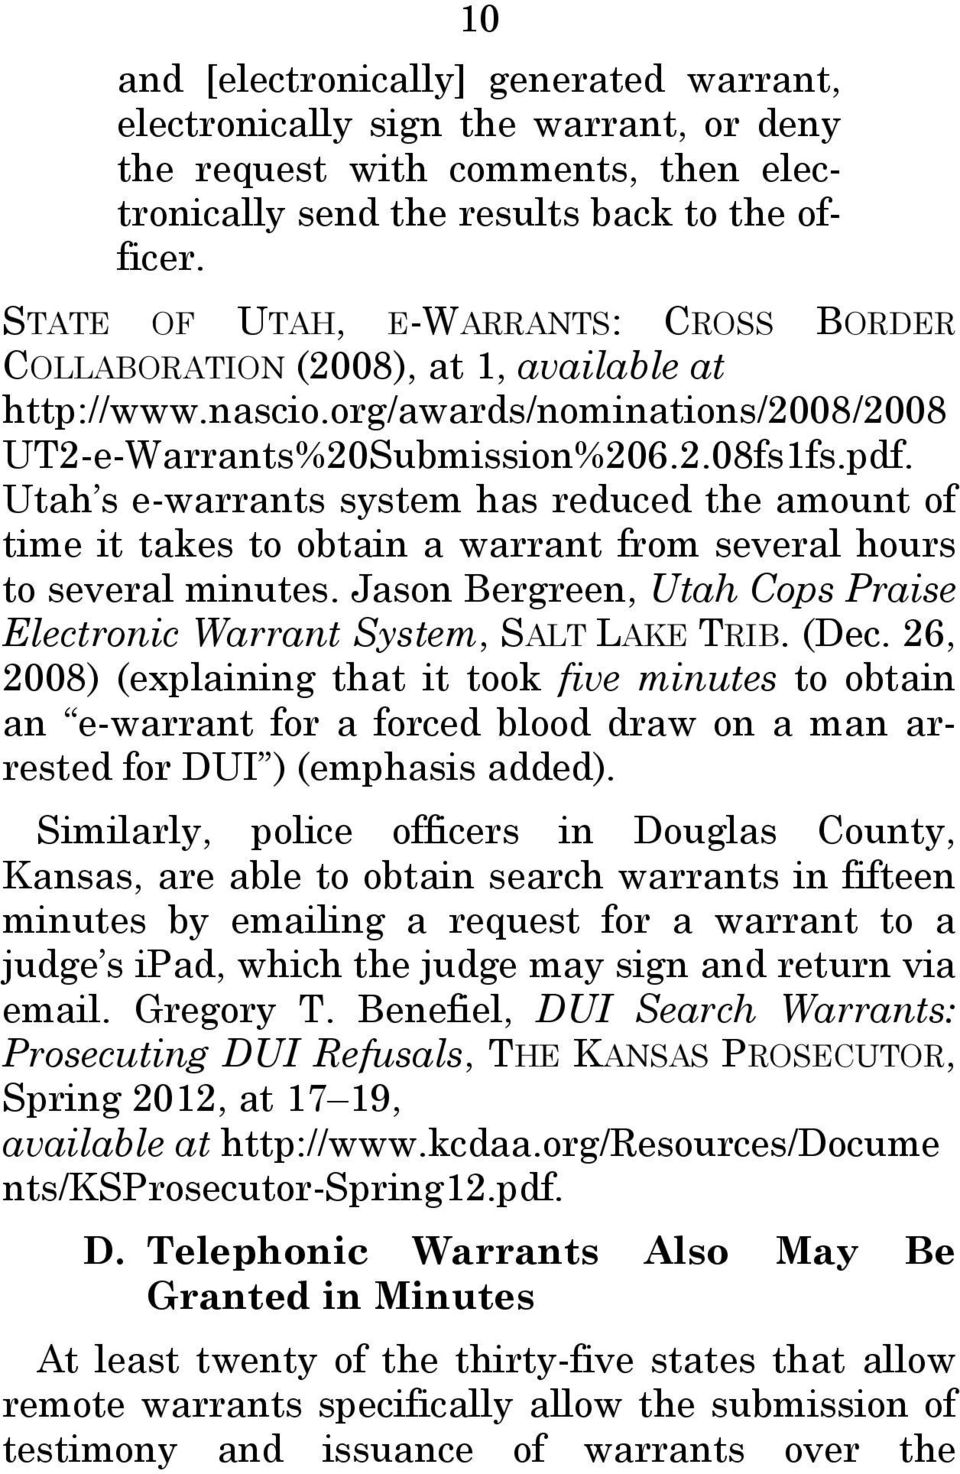 Utah s e-warrants system has reduced the amount of time it takes to obtain a warrant from several hours to several minutes. Jason Bergreen, Utah Cops Praise Electronic Warrant System, SALT LAKE TRIB.